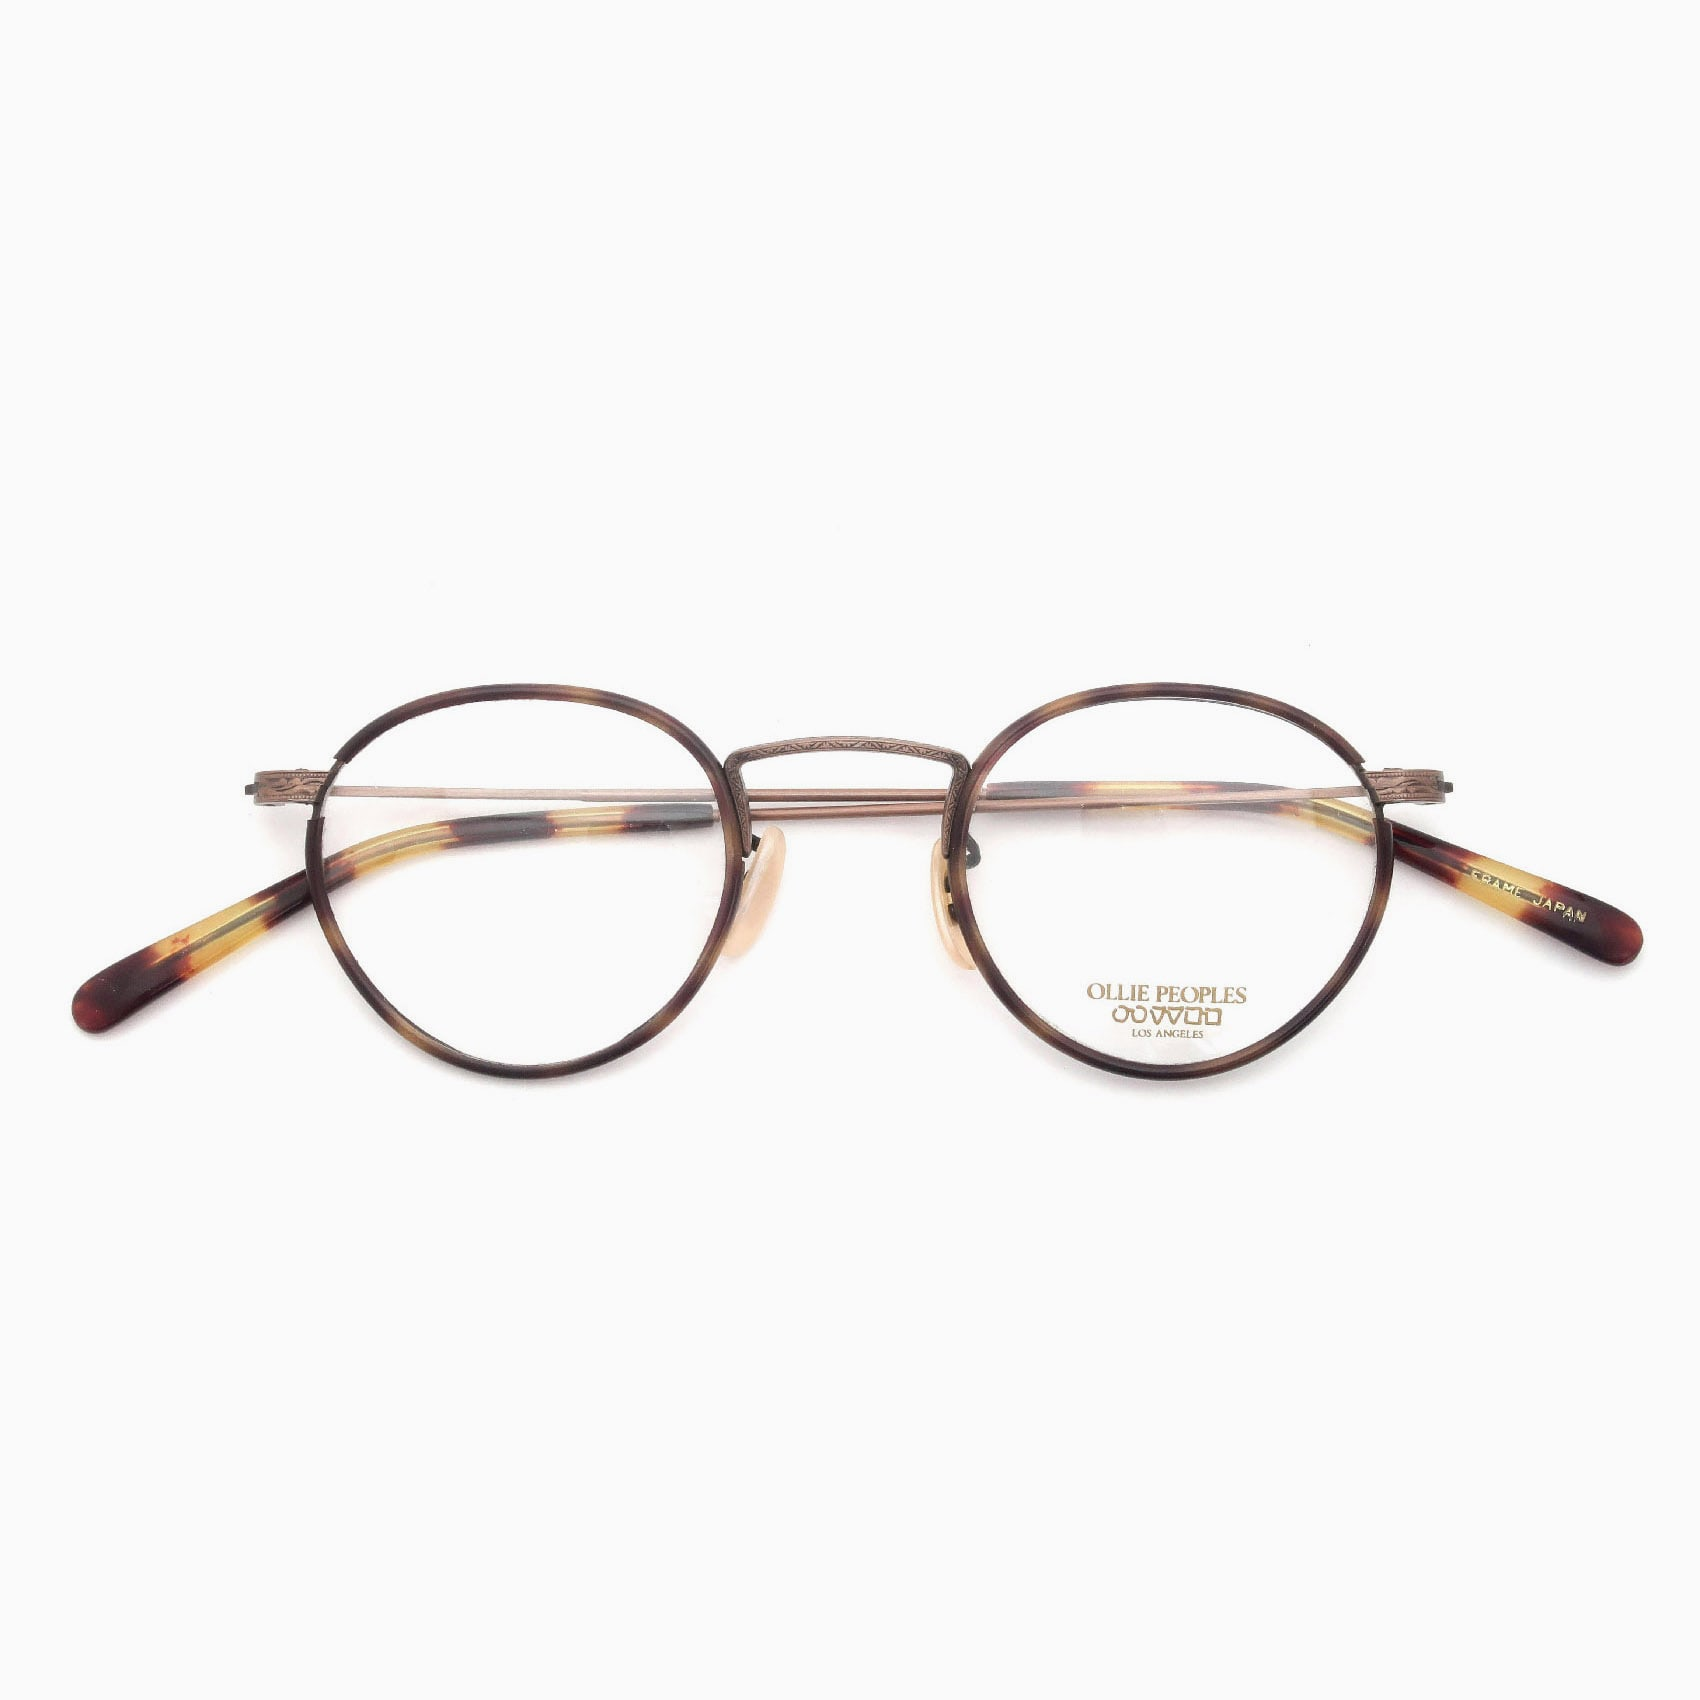 OLIVER-PEOPLES-ARCHIVE_Souse_517-BR_1